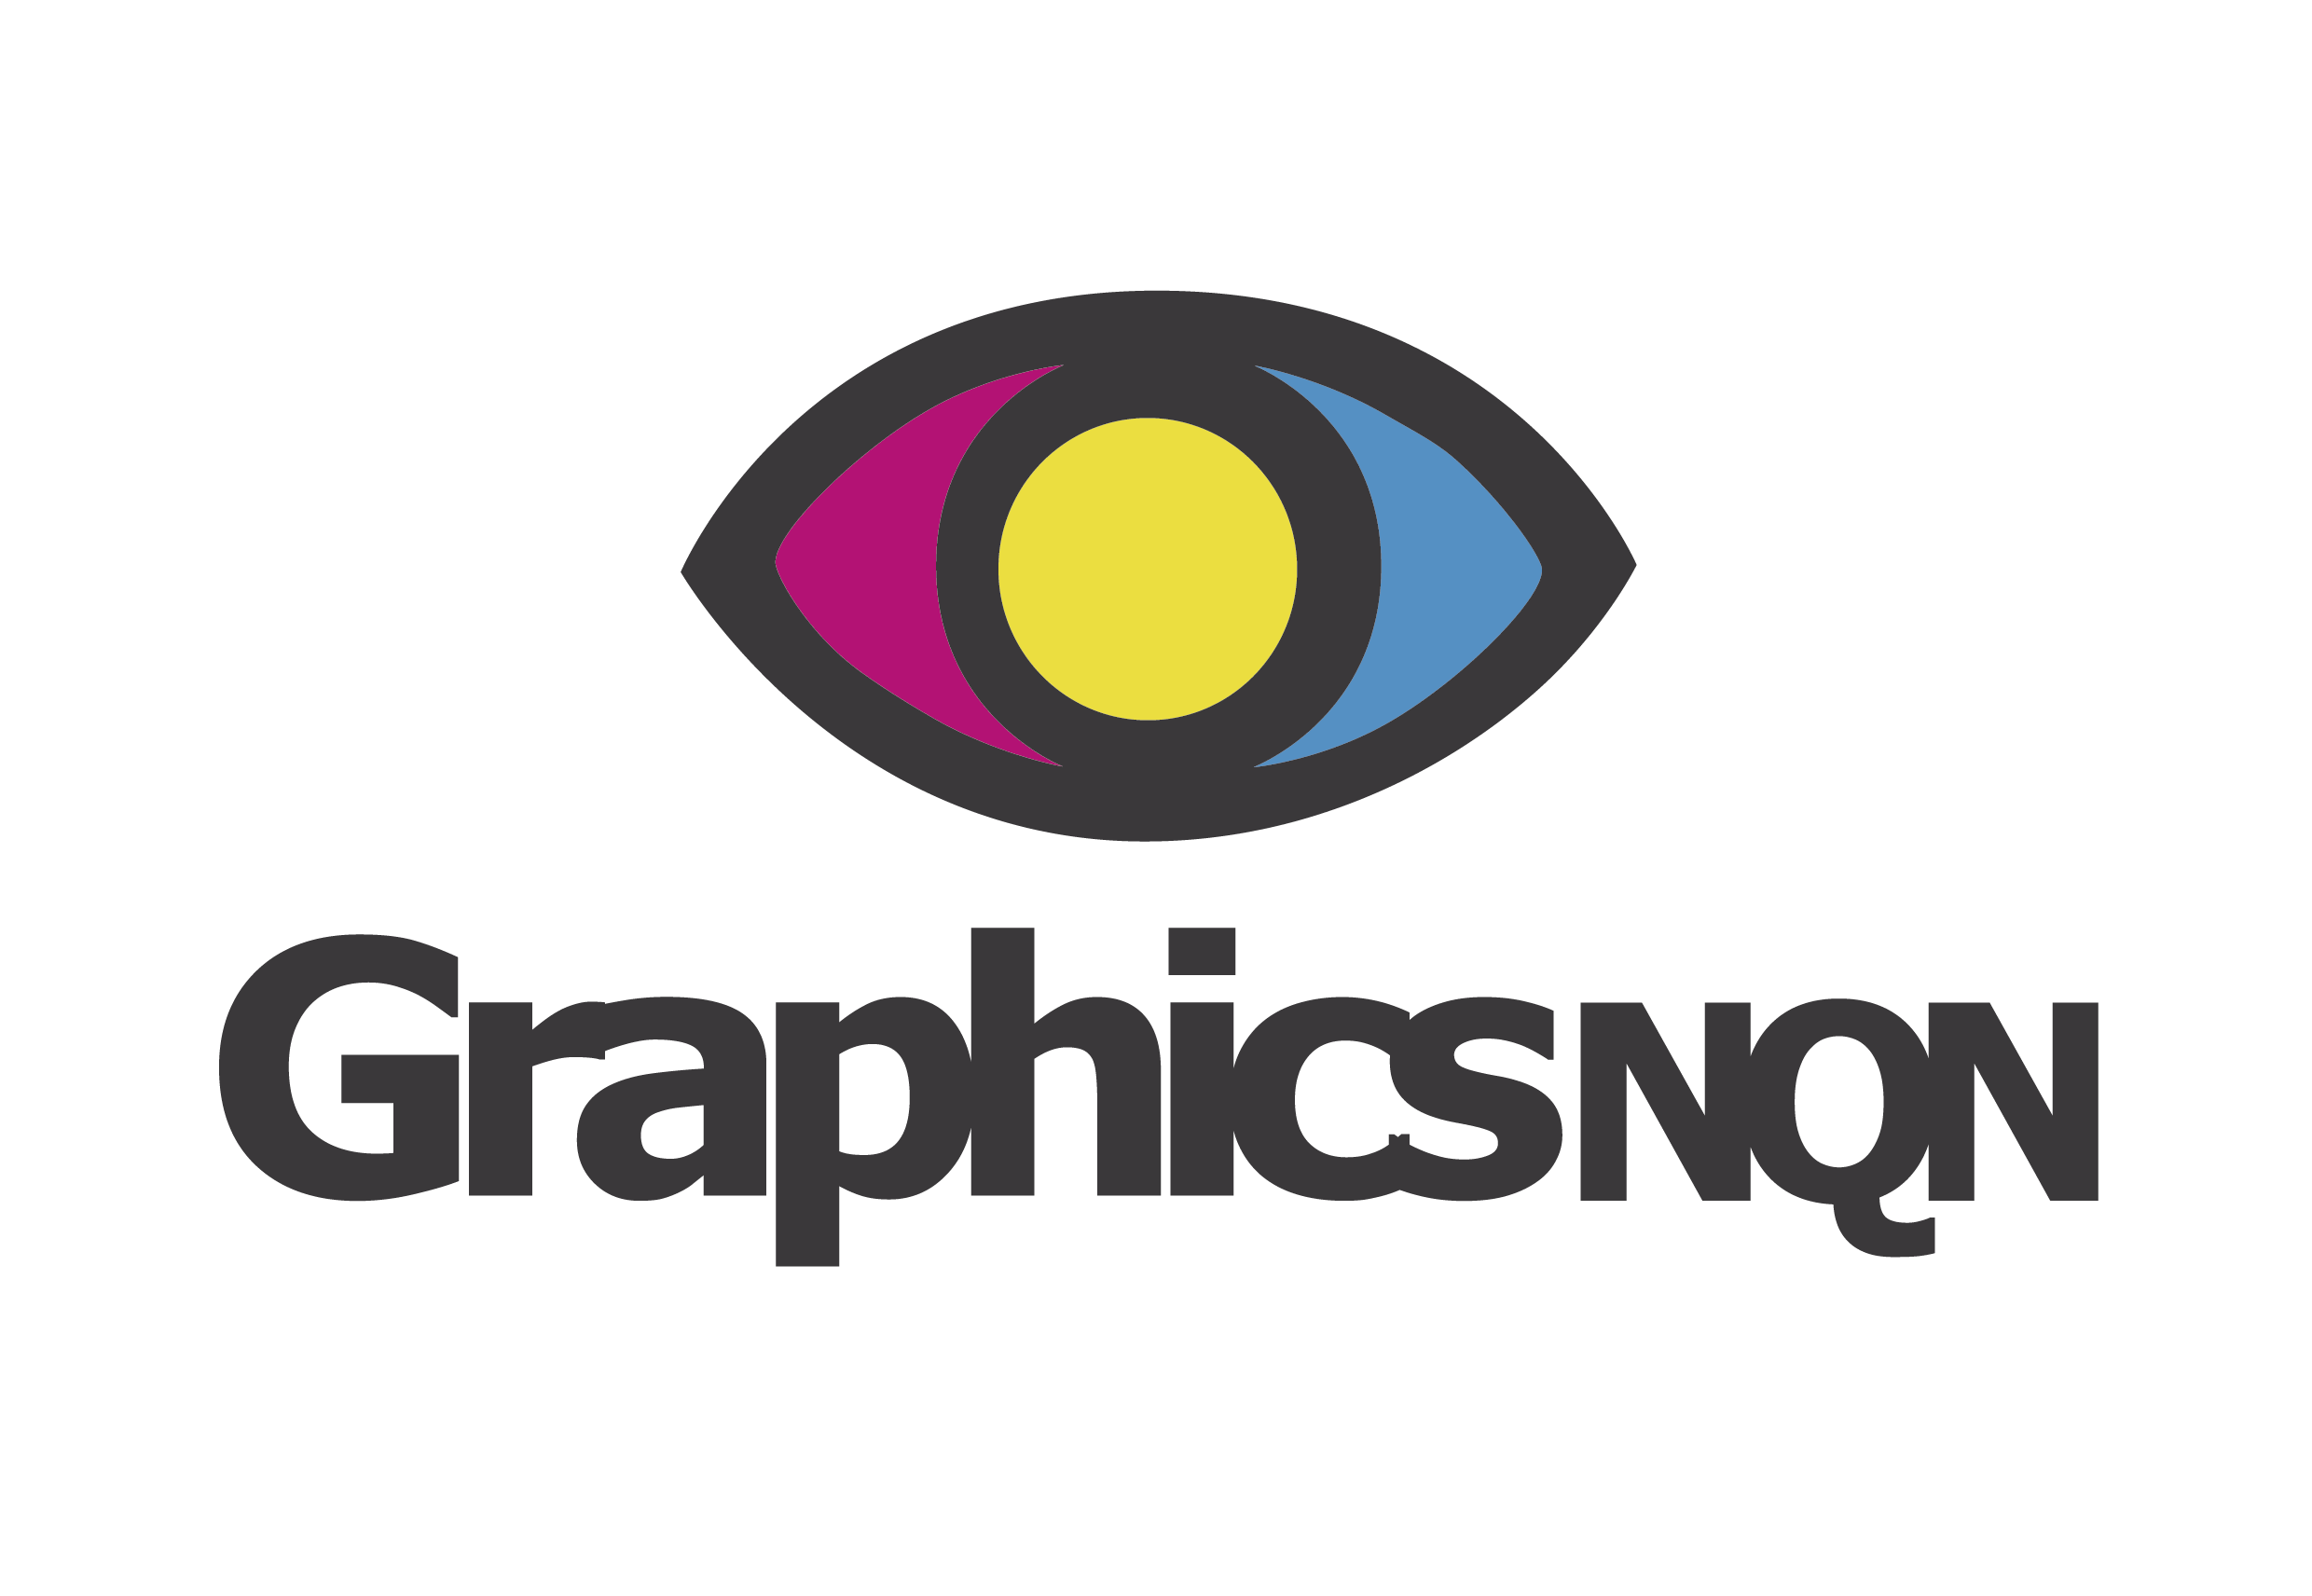 GRAPHICS NEUQUEN